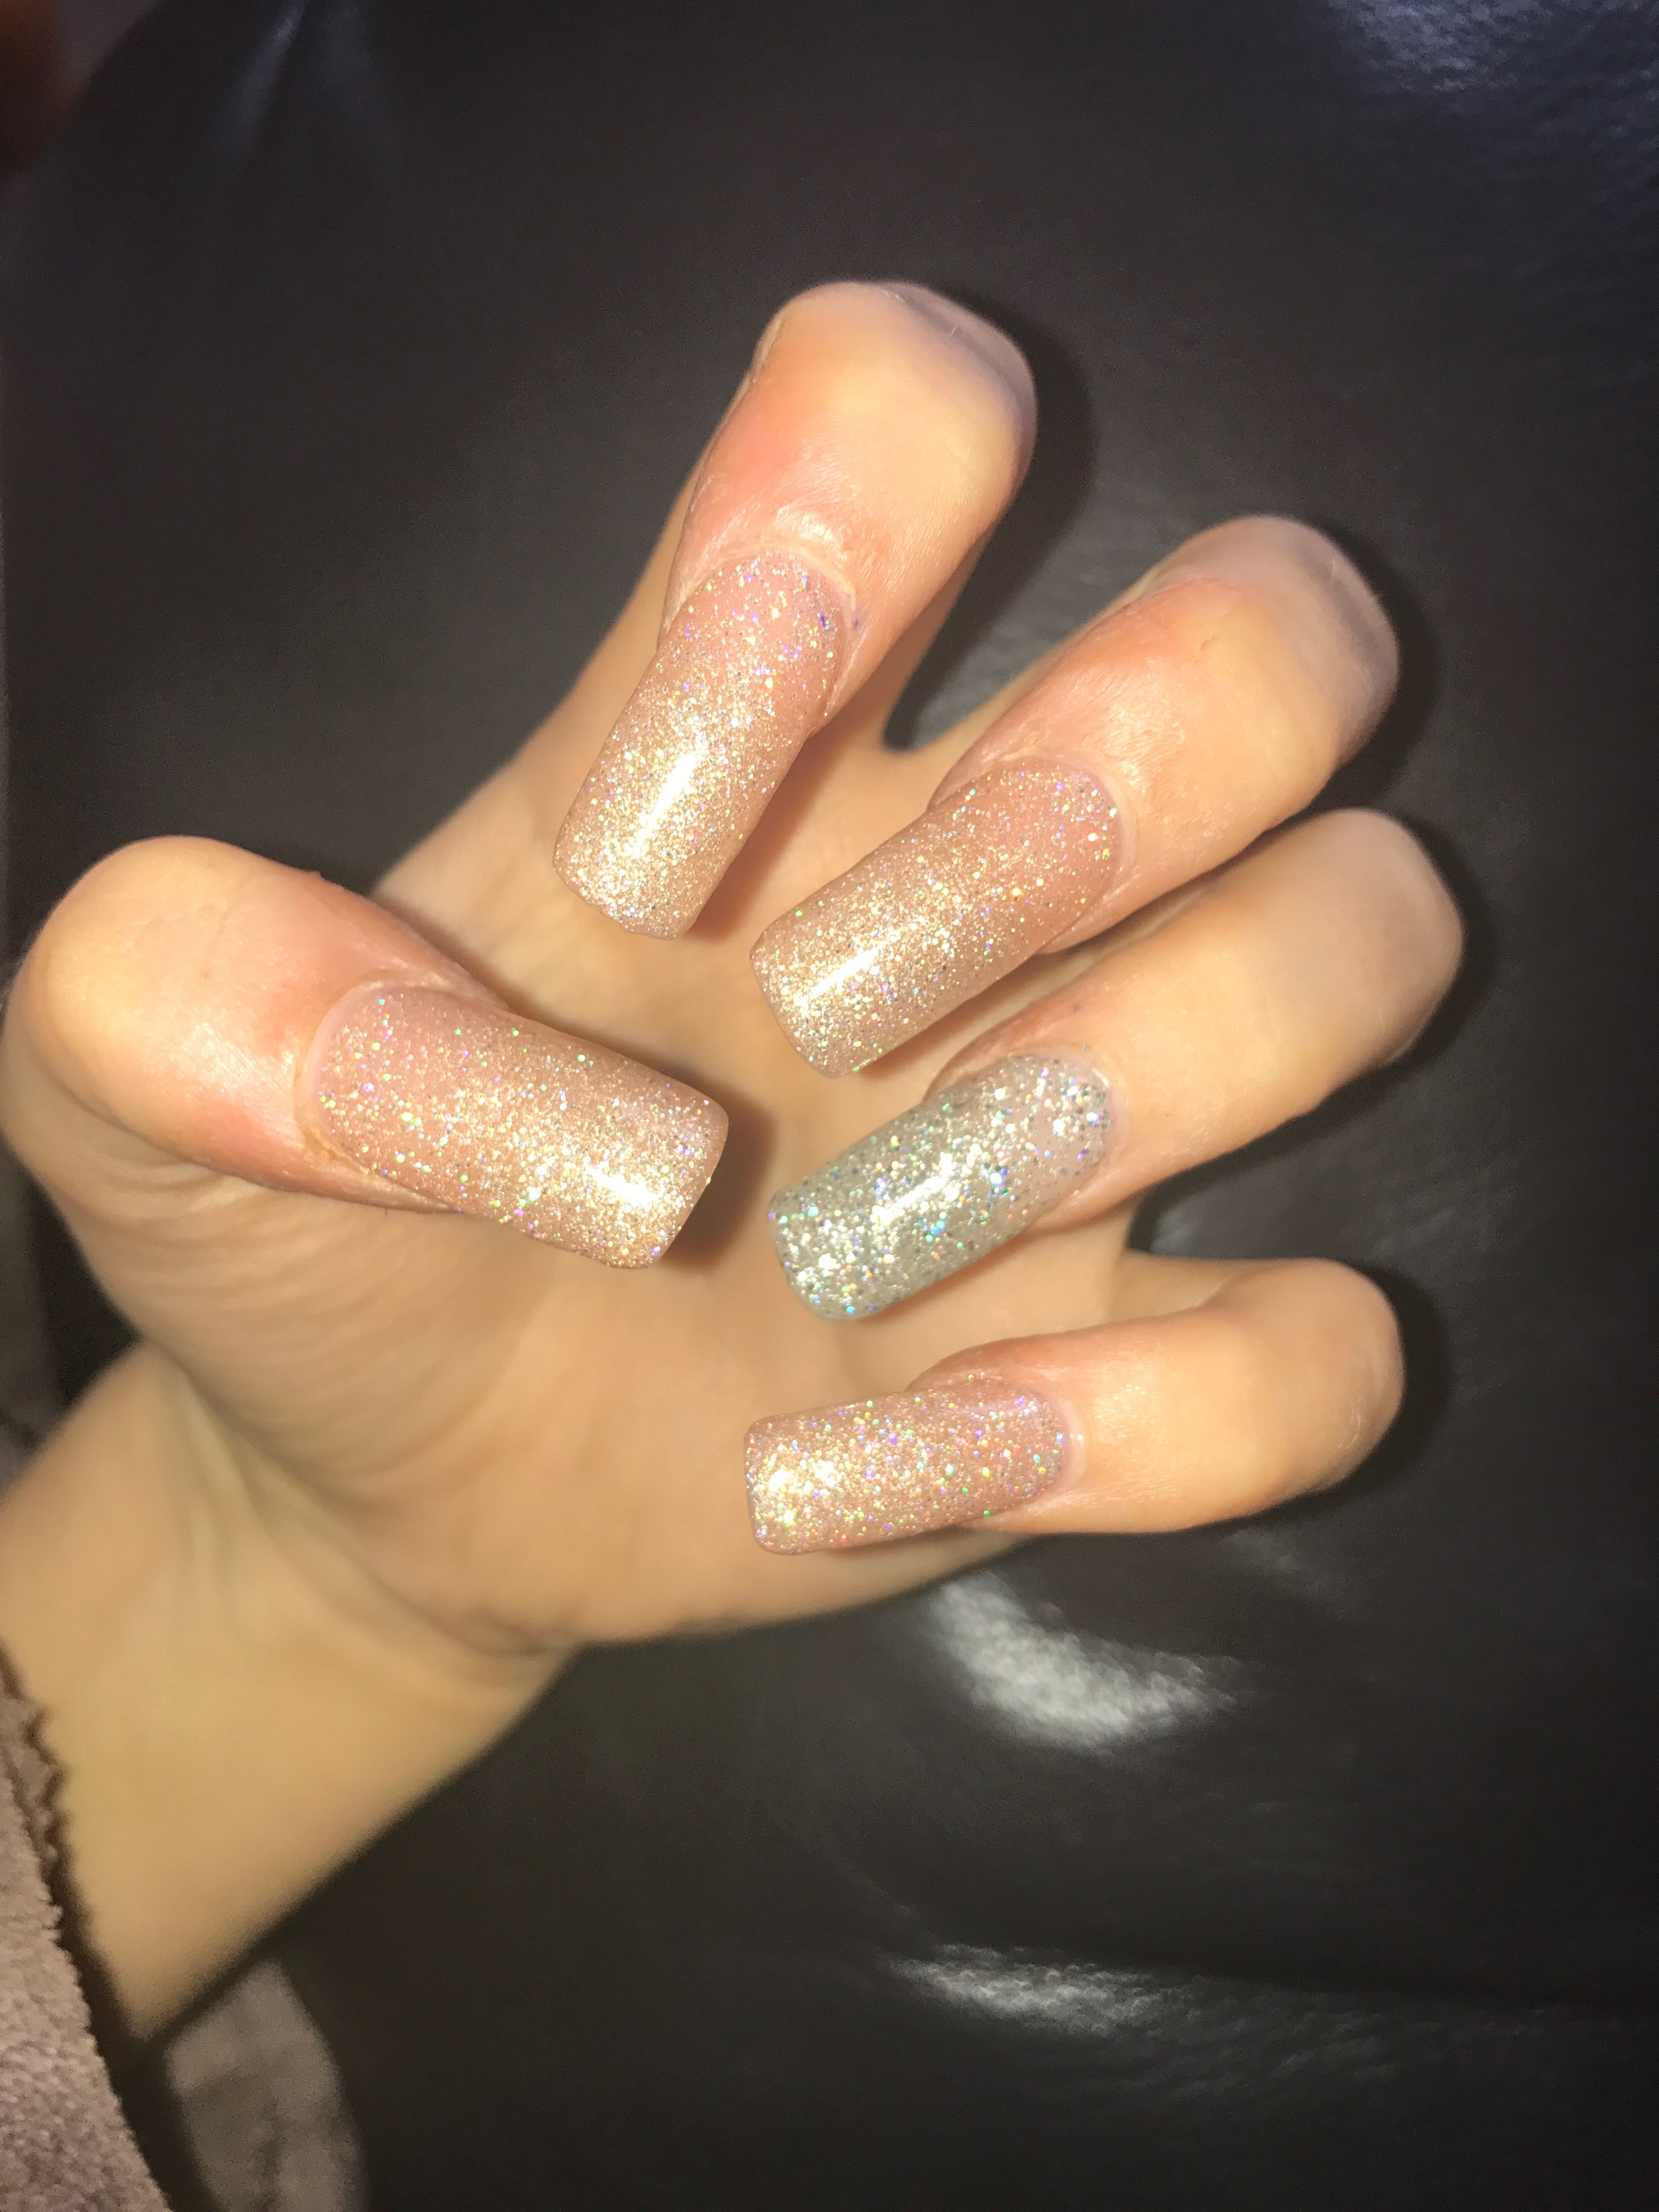 Nude gold silver acrylic nails with glitter #chrome #mermaid #long ...